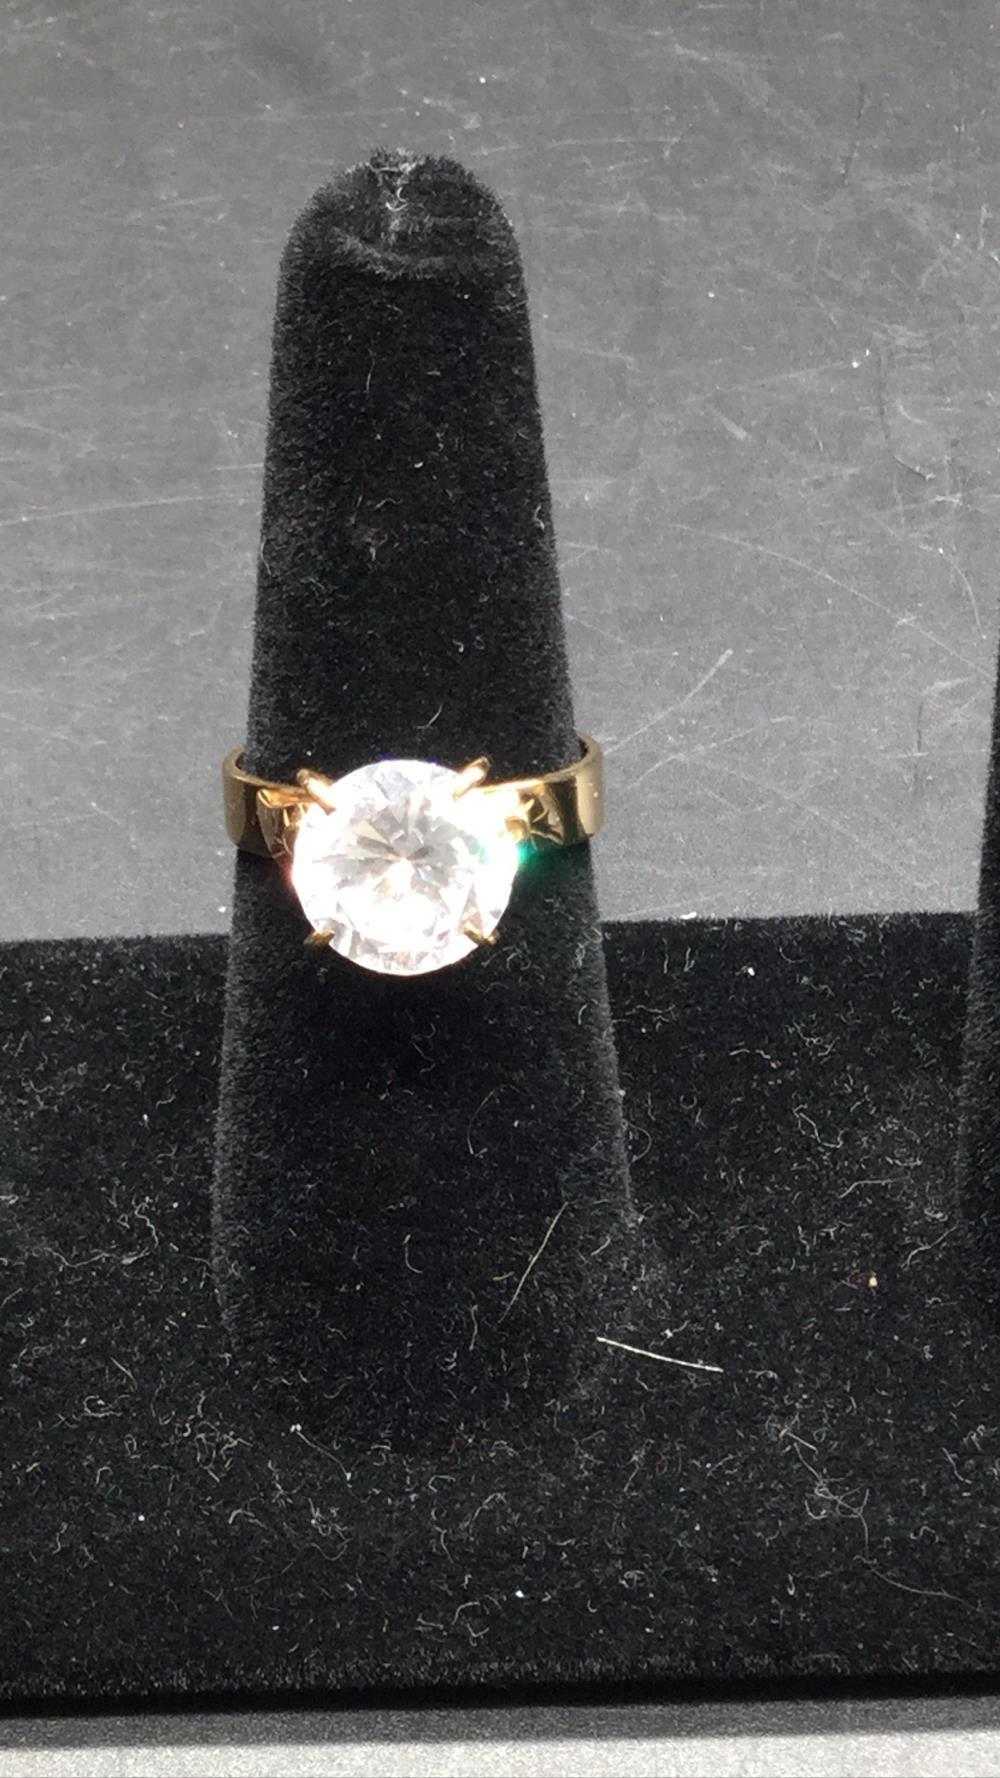 14k ring with 6.0 ct clear stone